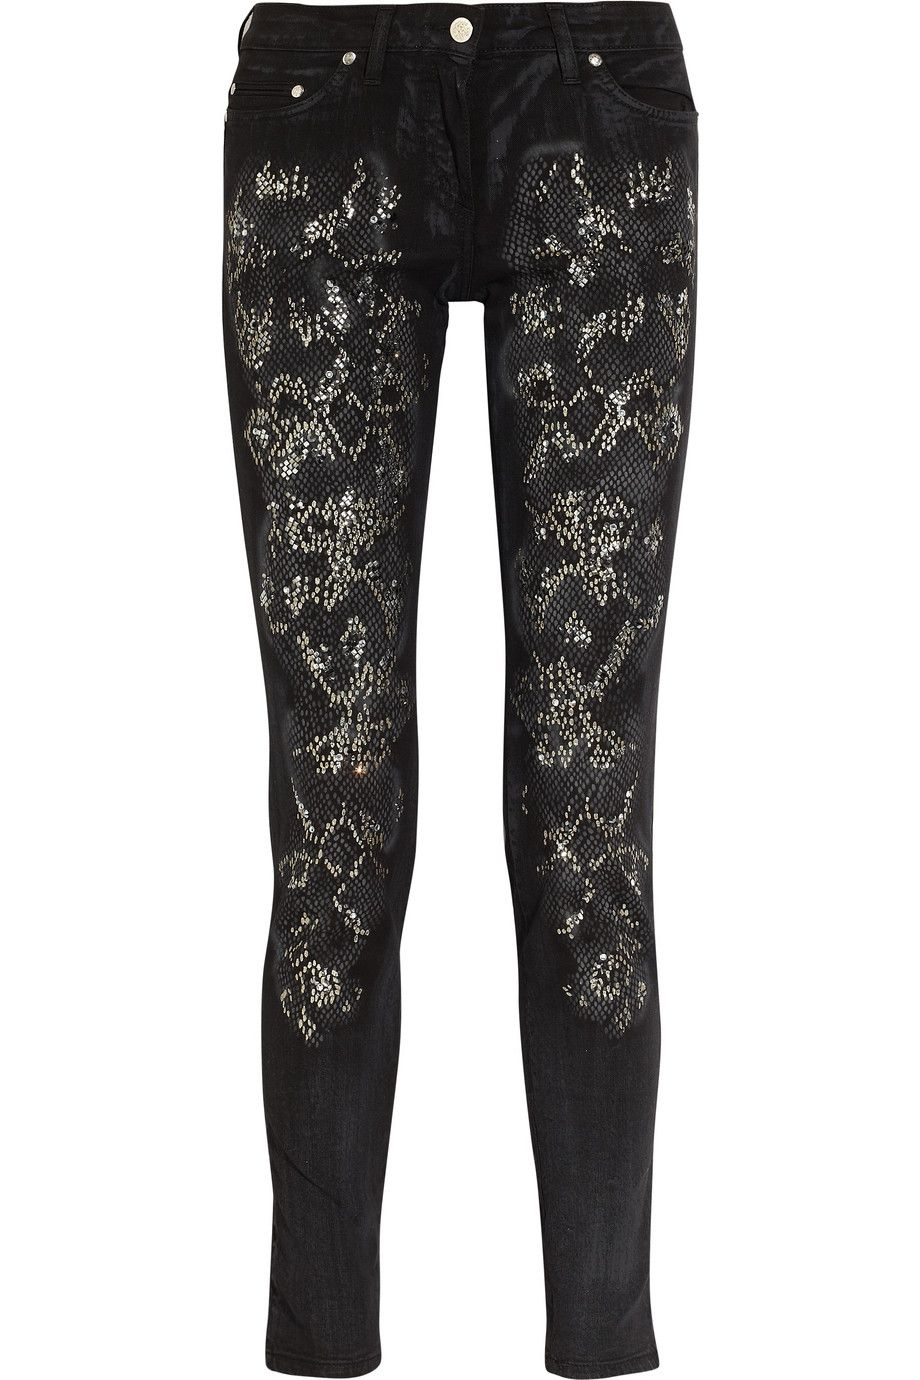 d7d70ffab463f Embellished mid-rise skinny jeans by Roberto Cavalli. These look awesome,  AND they're mid-rise! No muffin top!